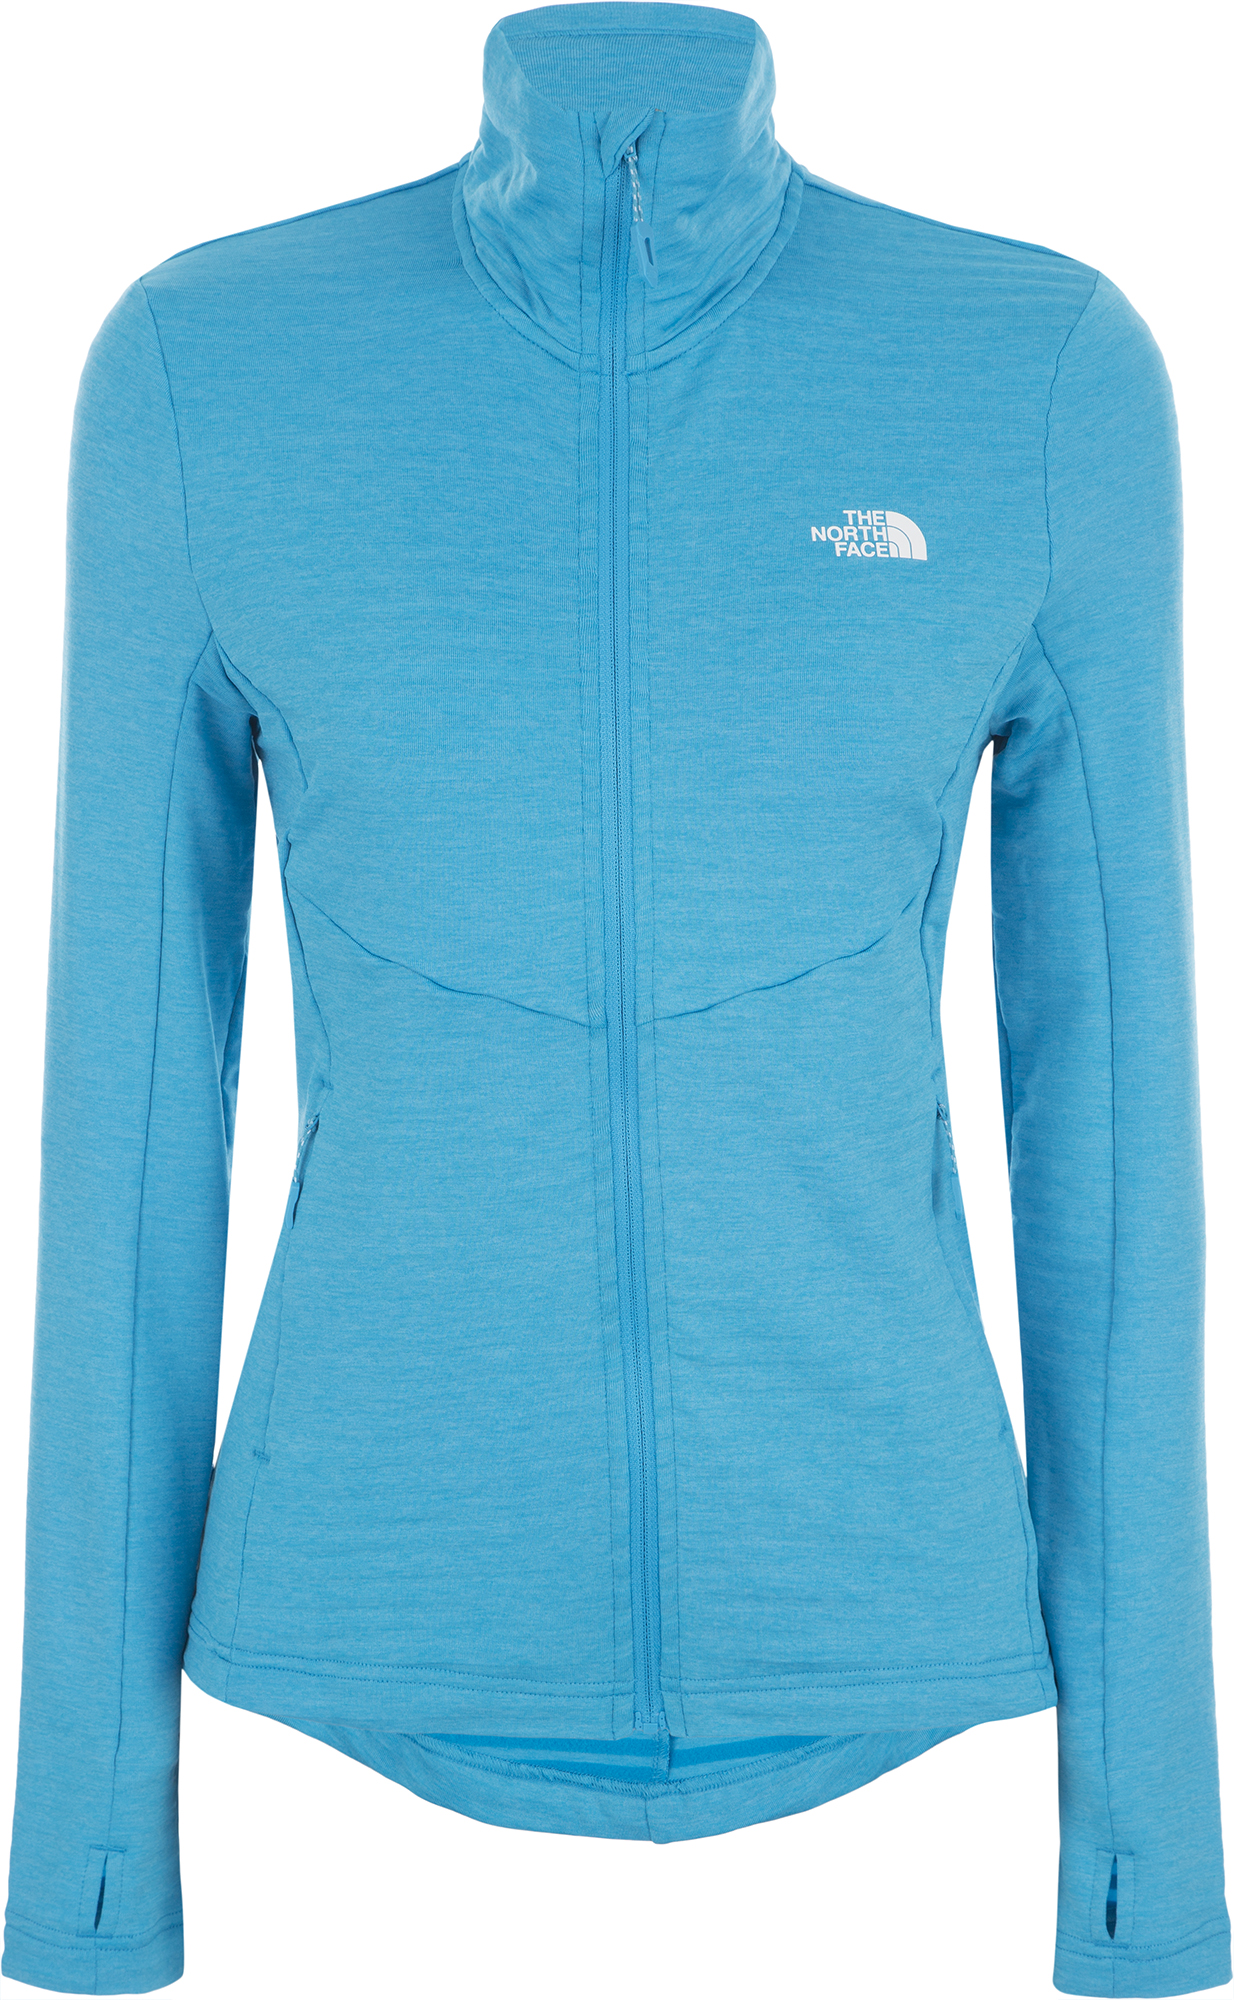 The North Face Толстовка женская The North Face Impendor Light Midlayer, размер 48